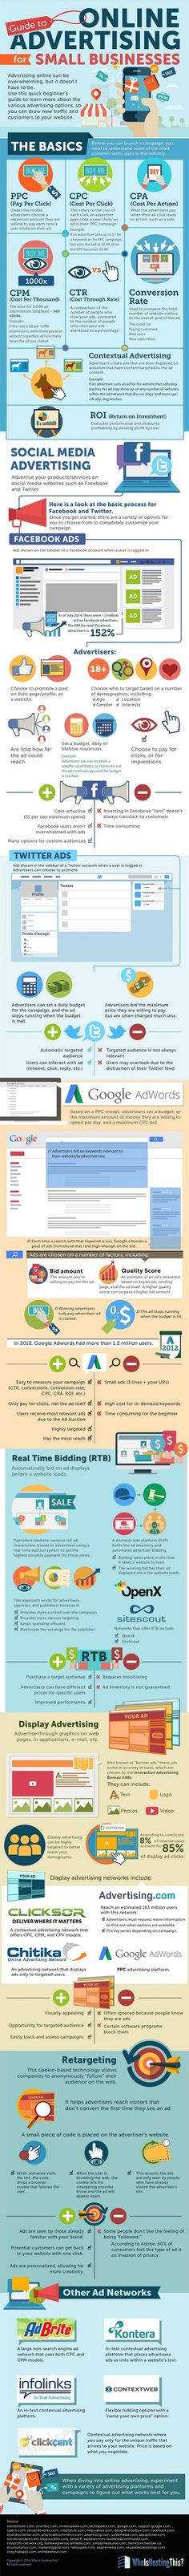 Online Advertising A Beginners Guide to Social Media and Google Ads #Infographic